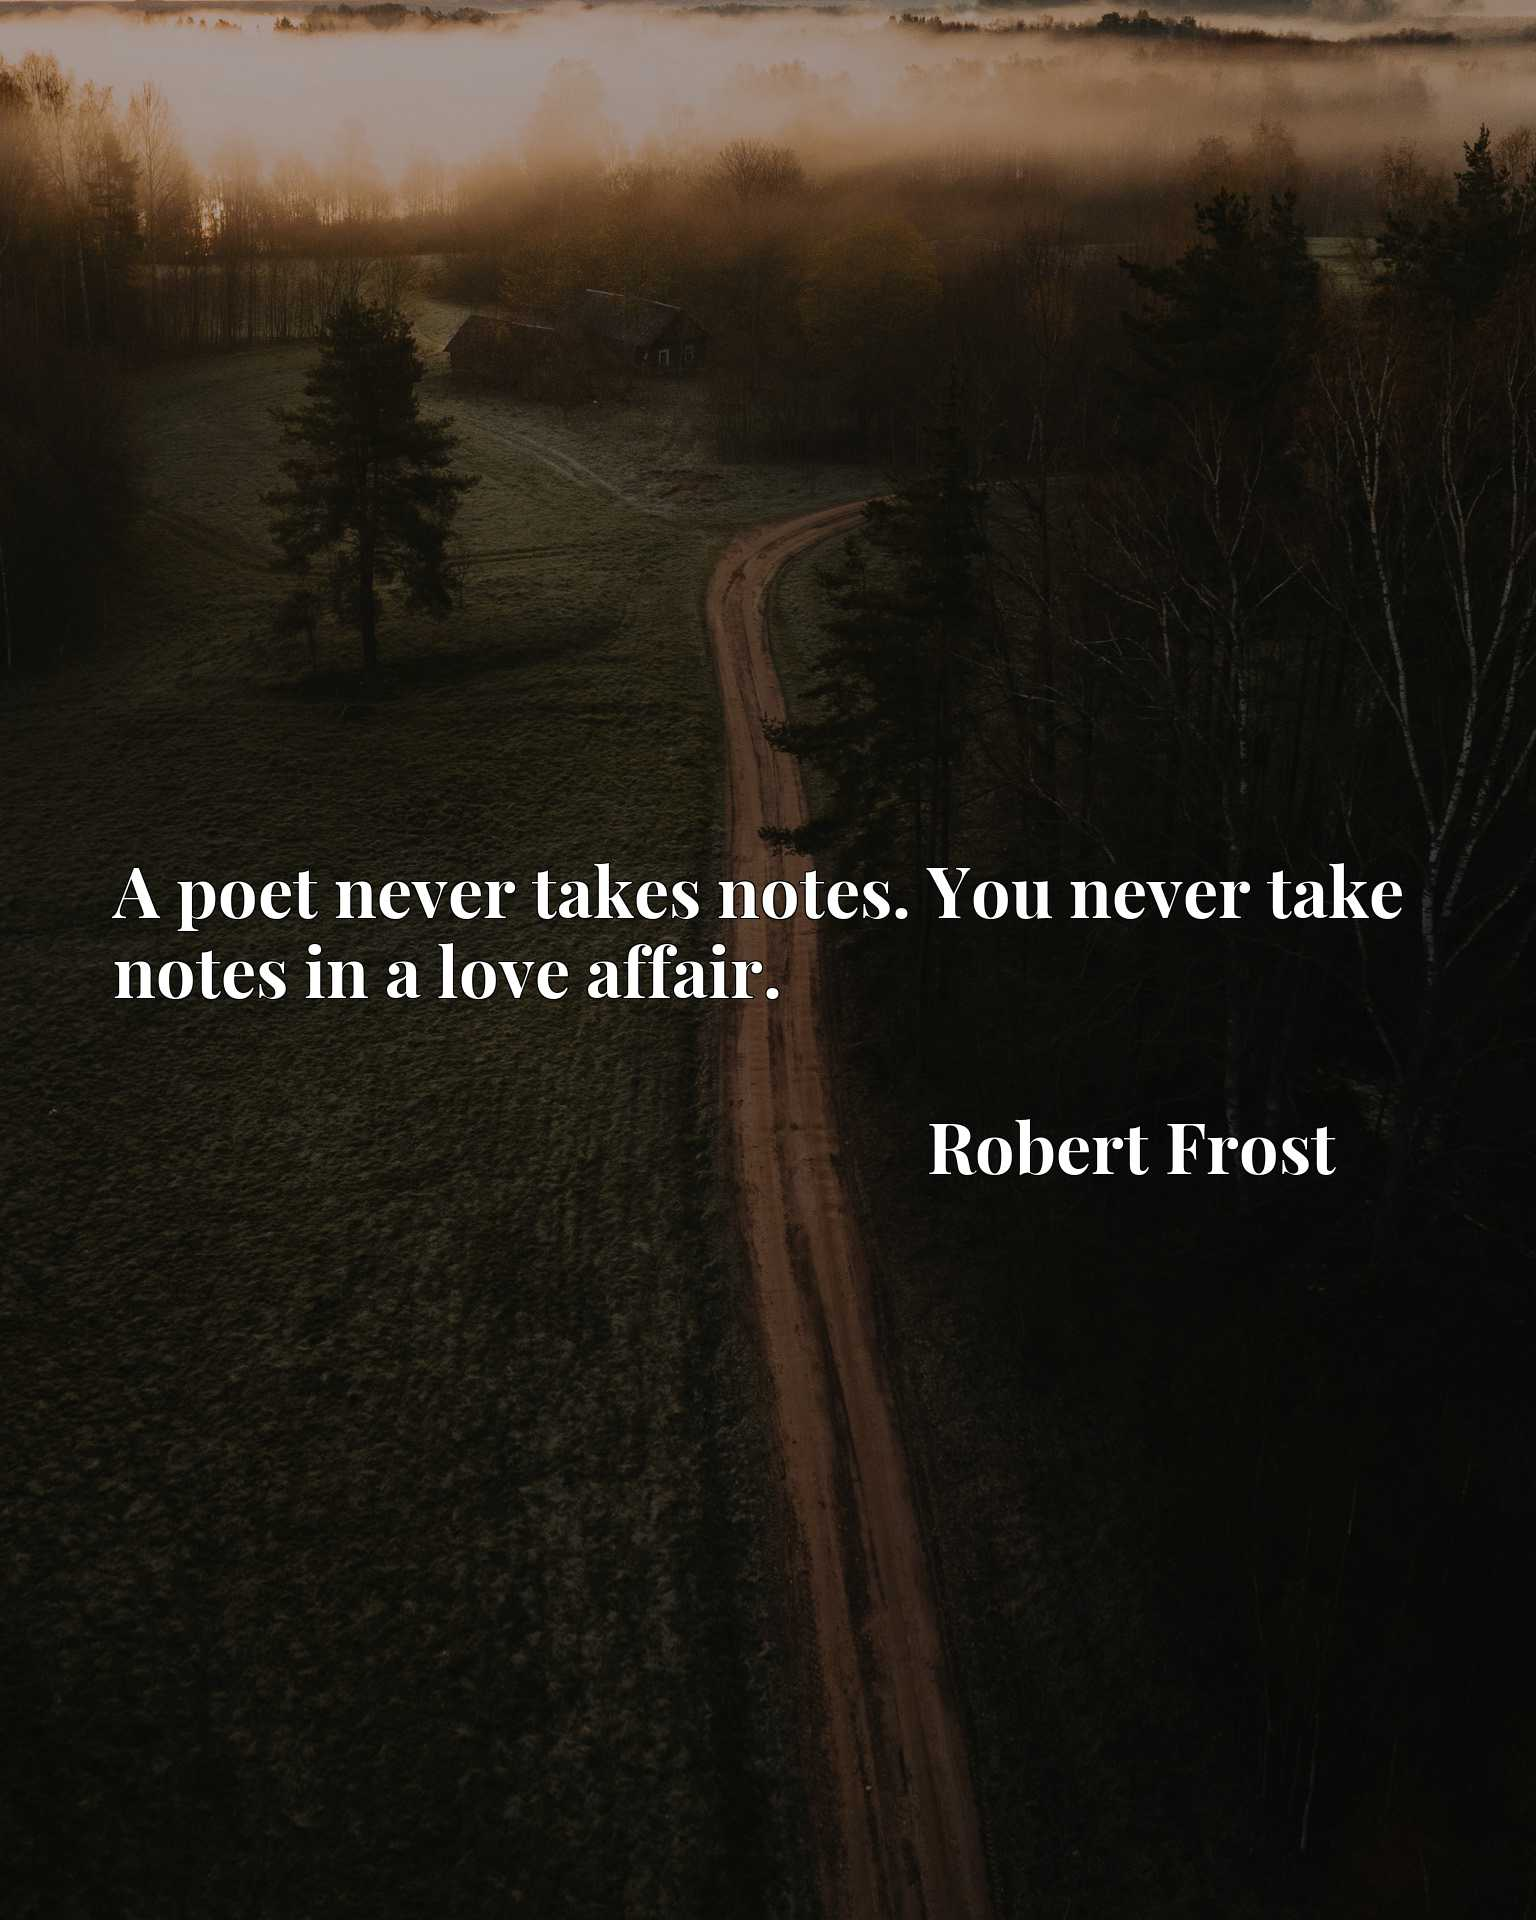 A poet never takes notes. You never take notes in a love affair.